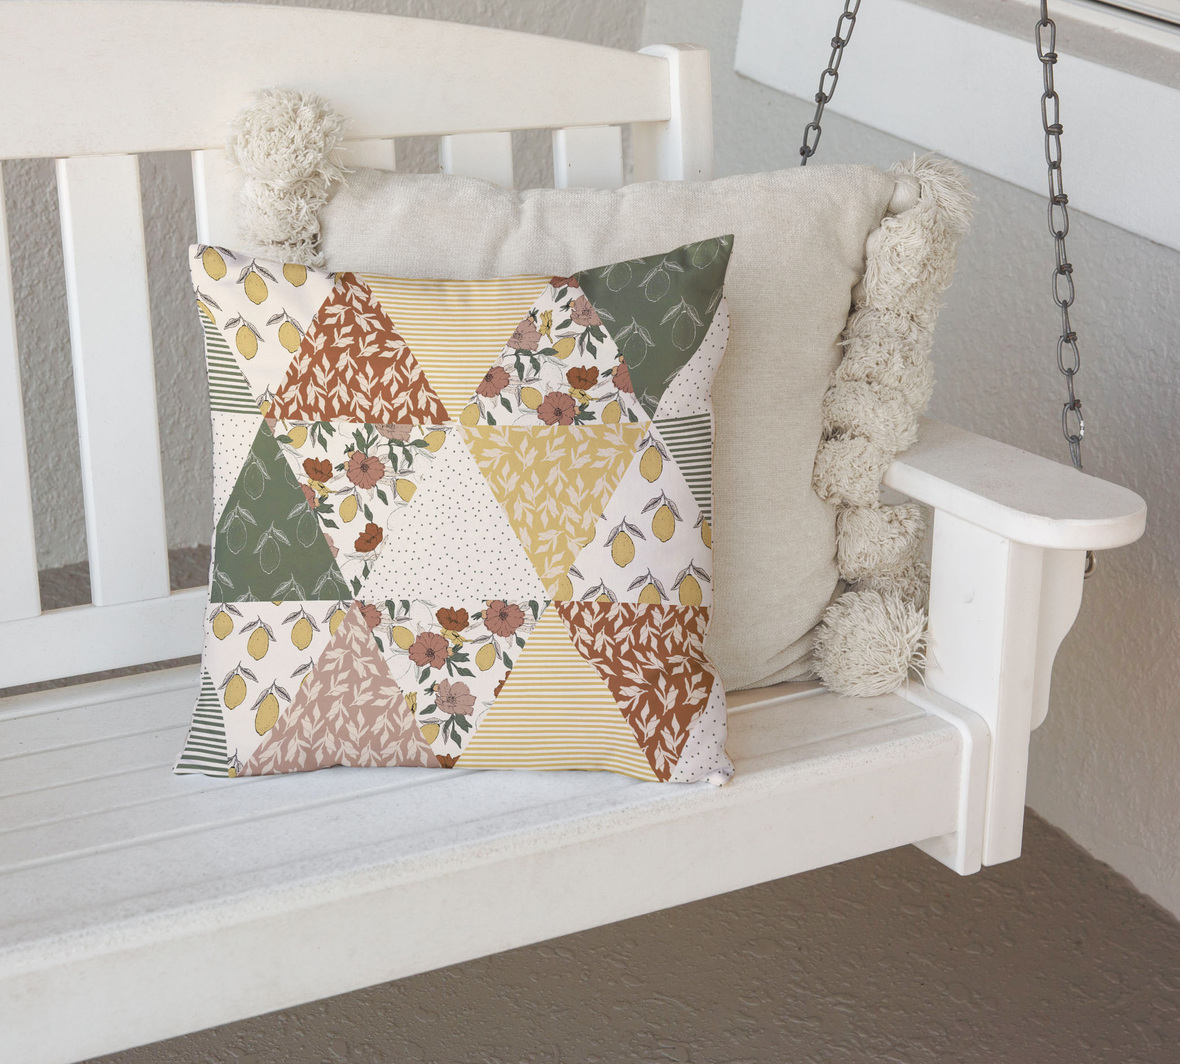 Pillow on Porch Swing